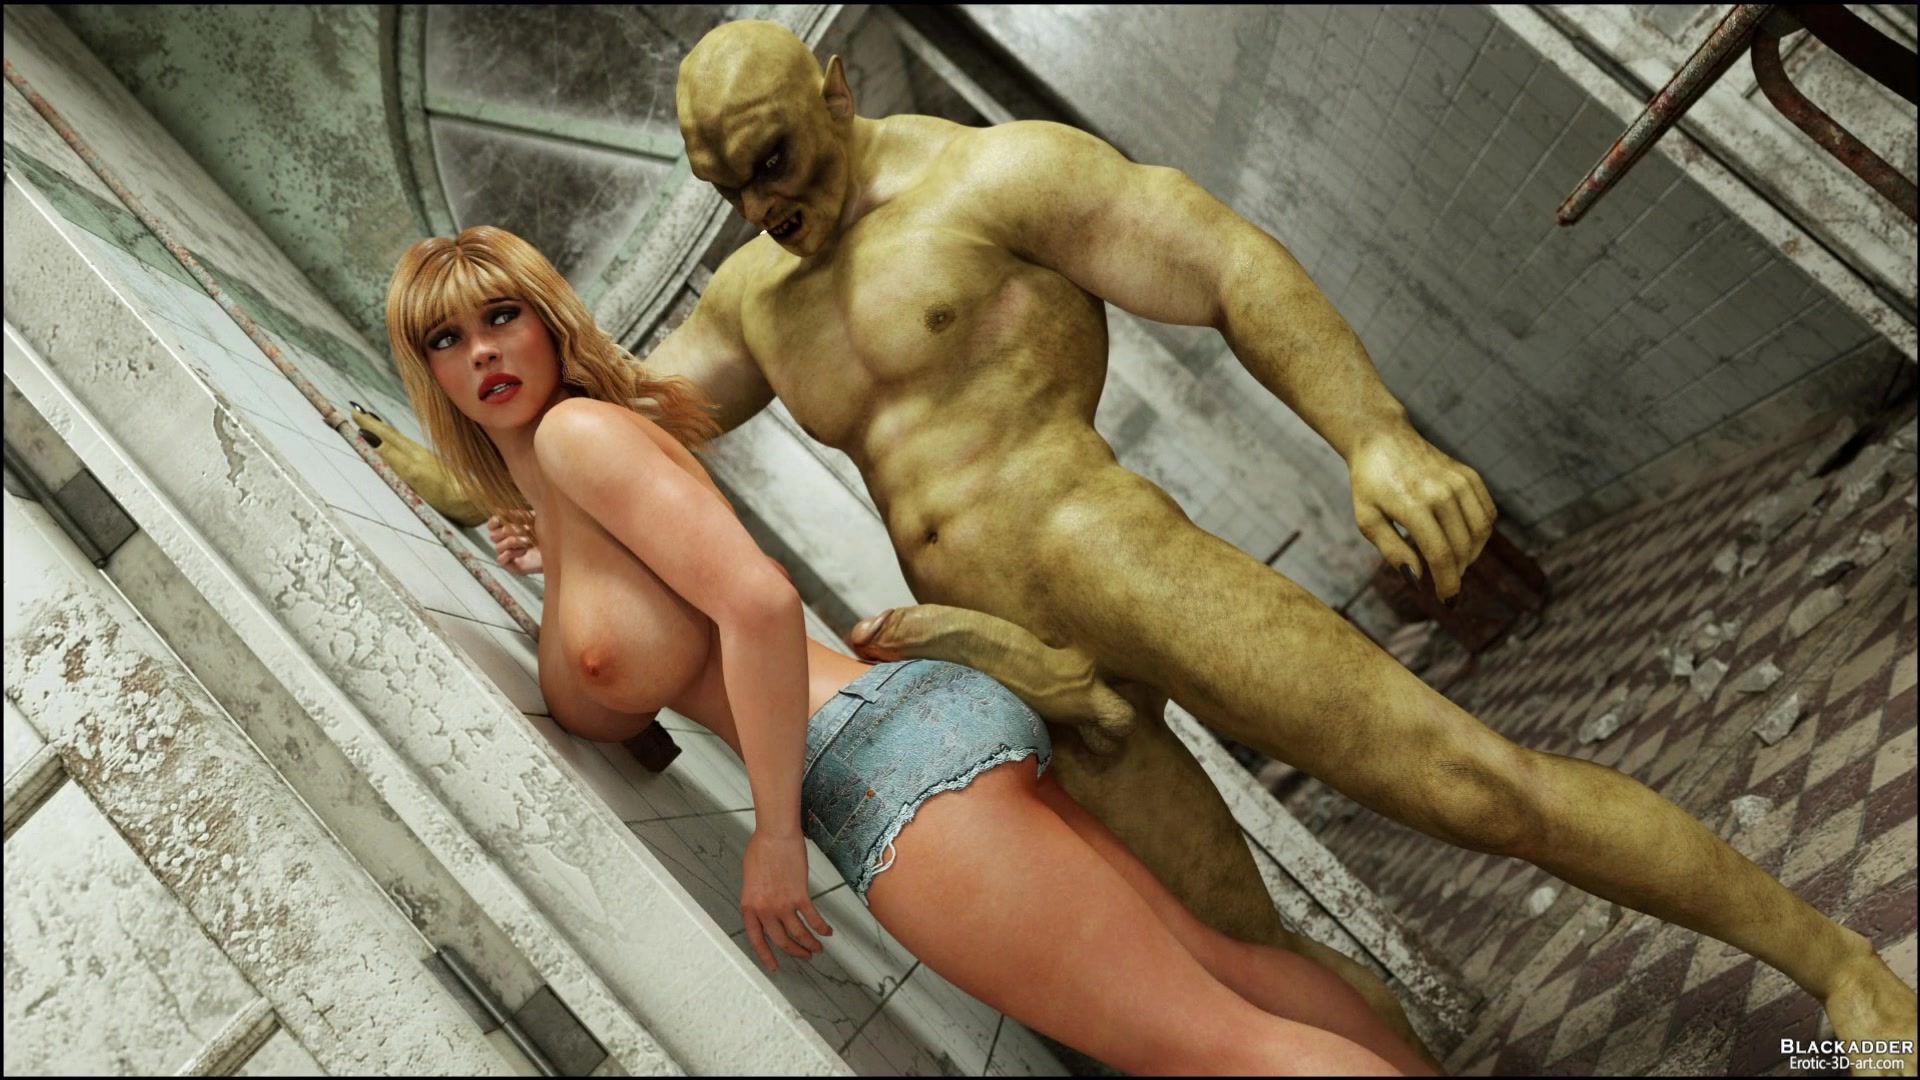 Monster sex 3d in hd adult pictures